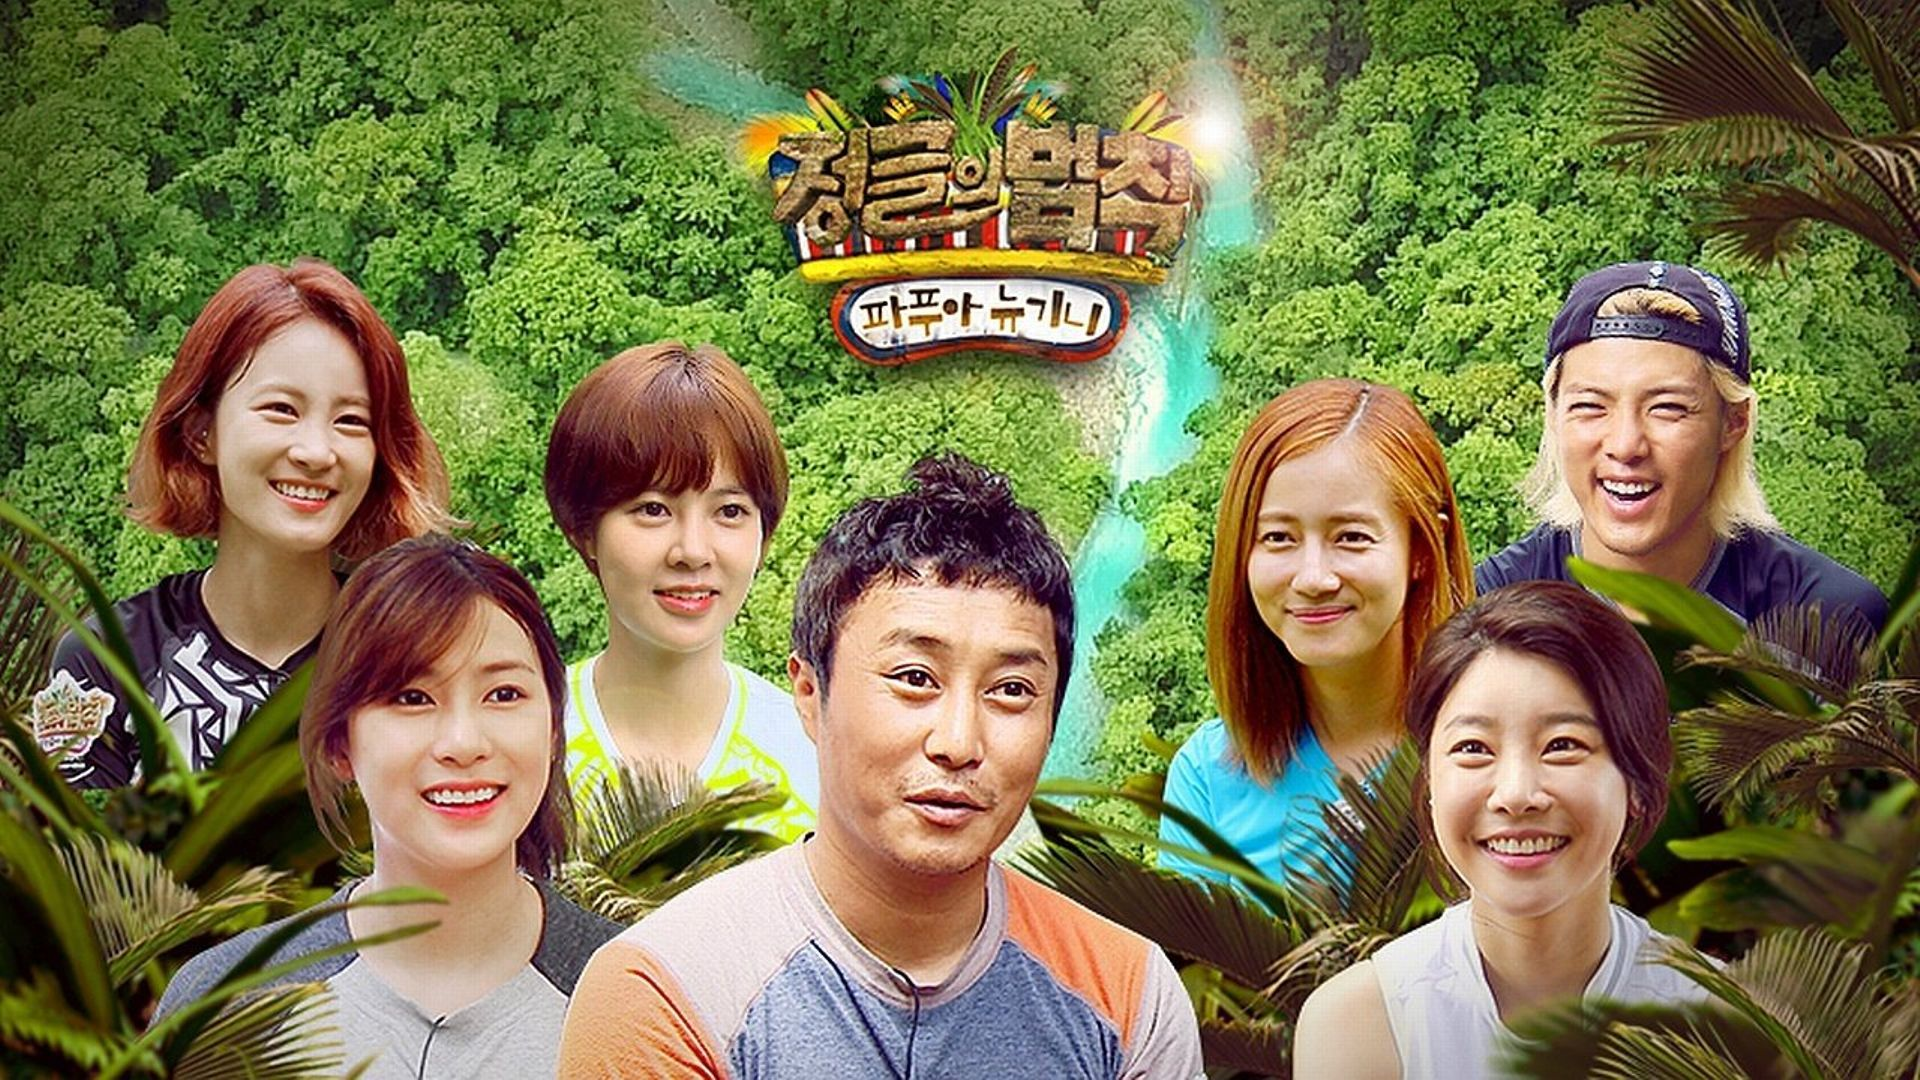 Law of the Jungle Season 1: Where To Watch Every Episode